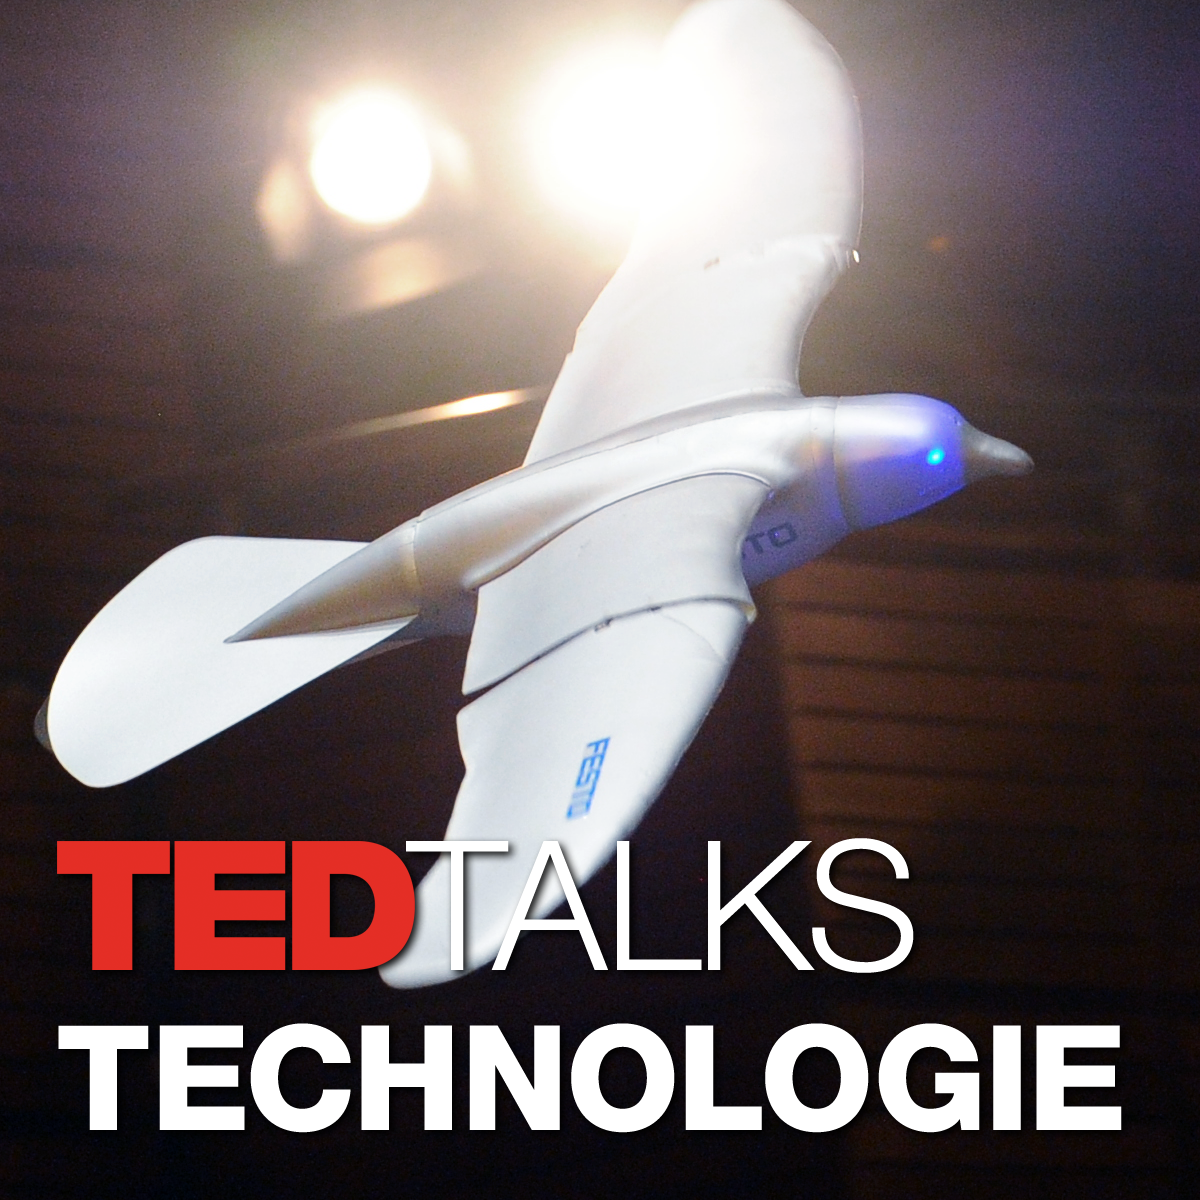 TEDTalks Technologie